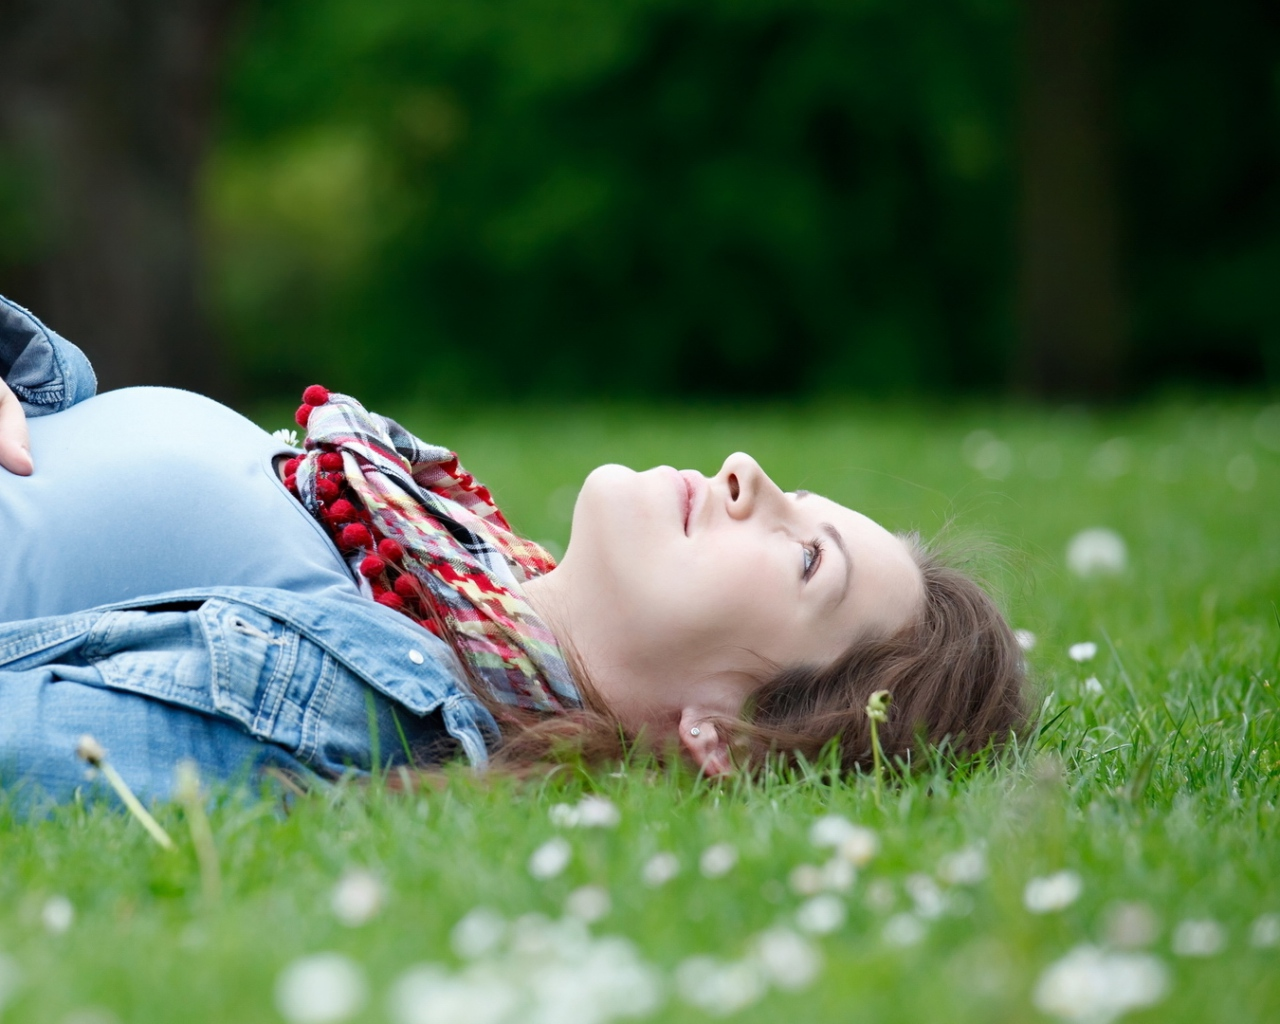 girl_lying_grass_pregnancy_stomach_smiling_happiness_55127_1280x1024